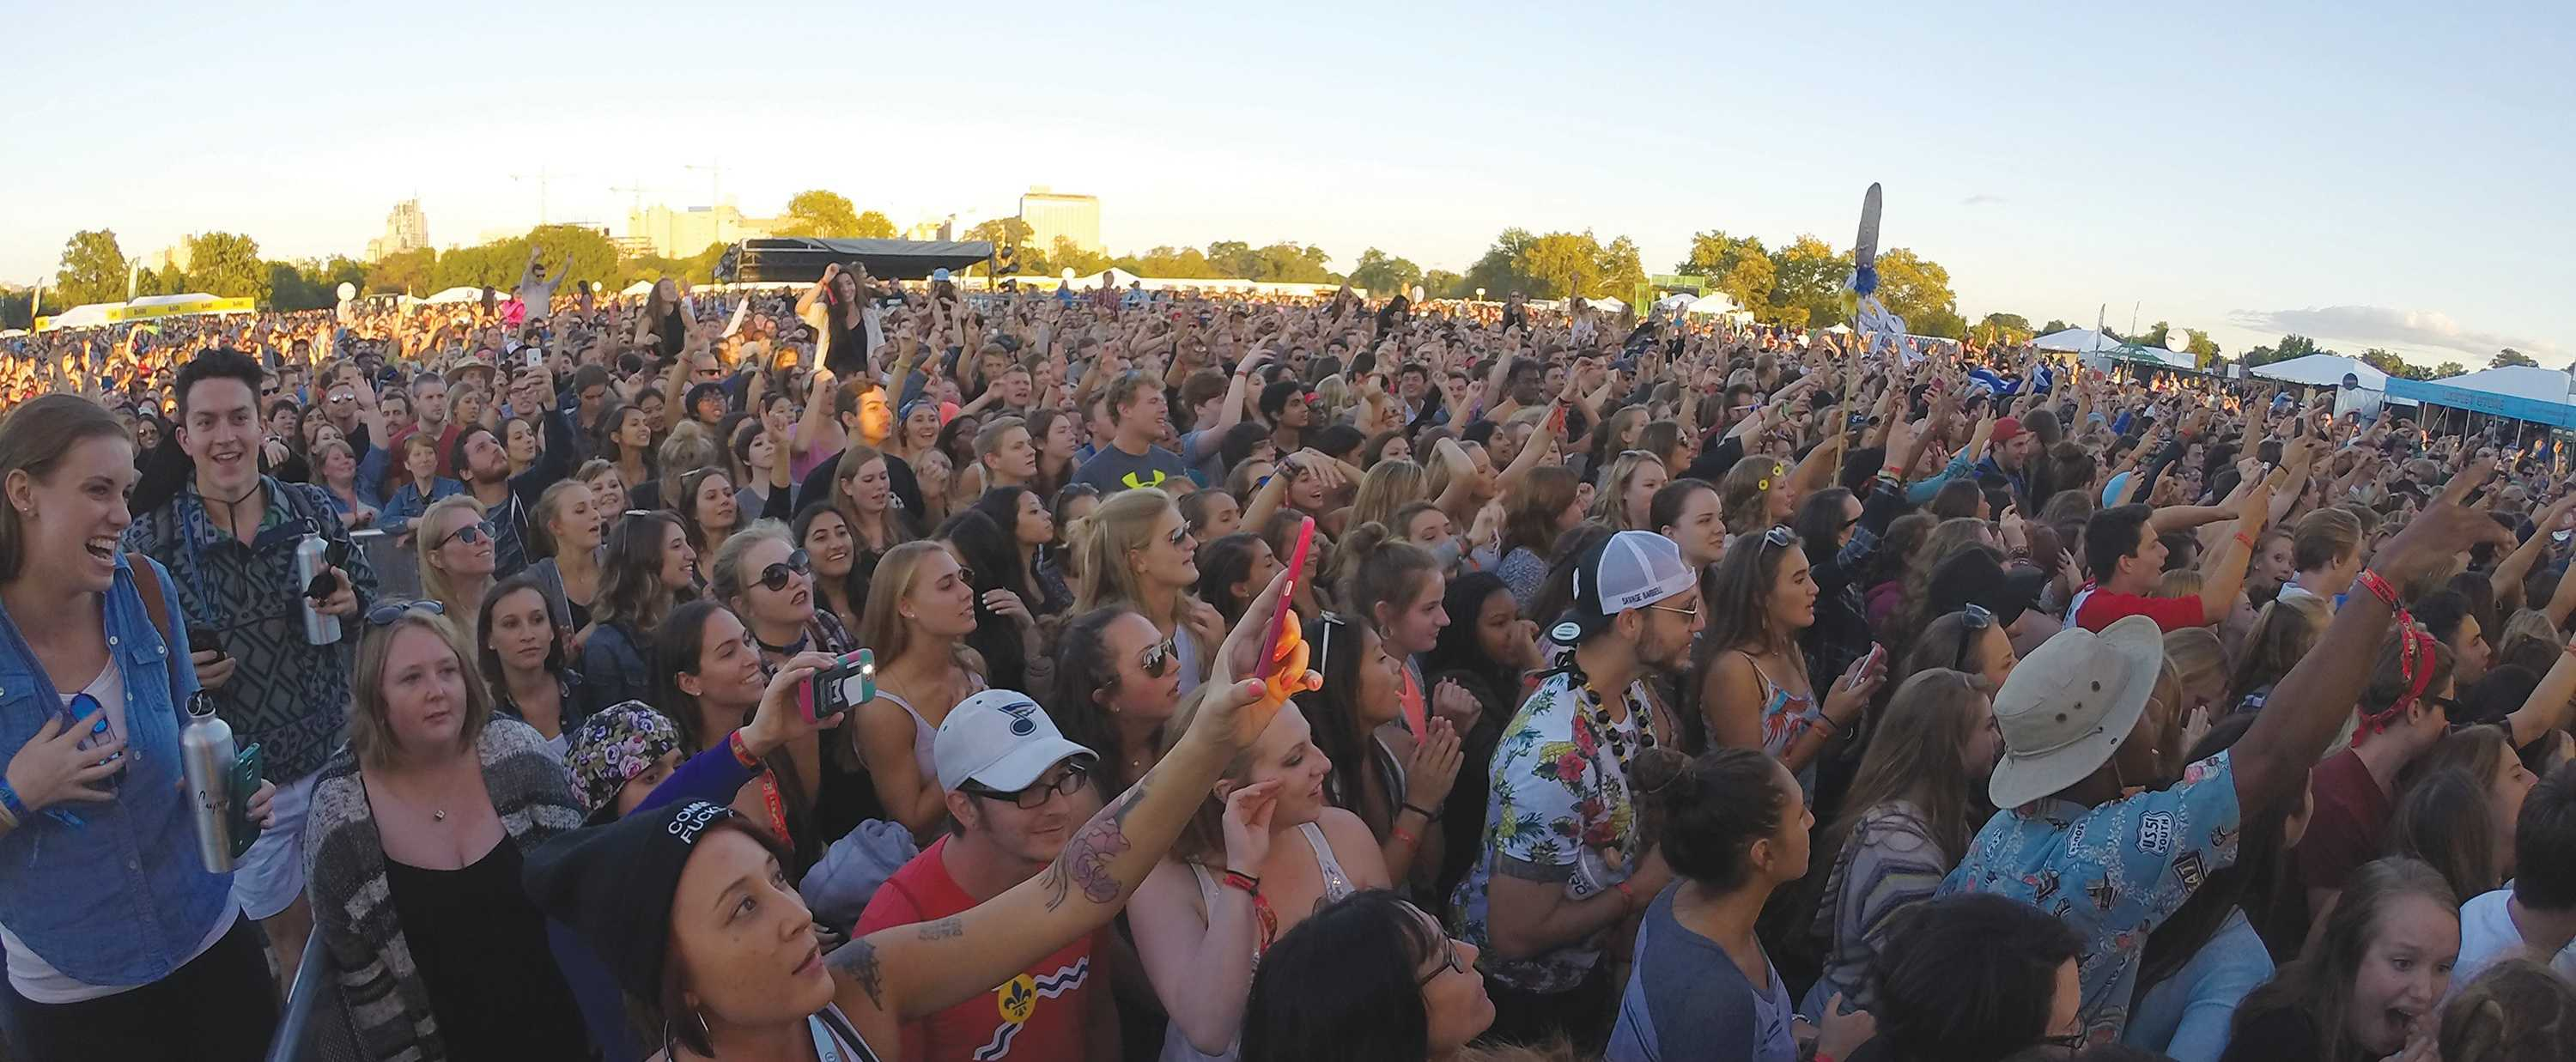 Photo by Phil Brahm The Crowd at the 2015 Loufest